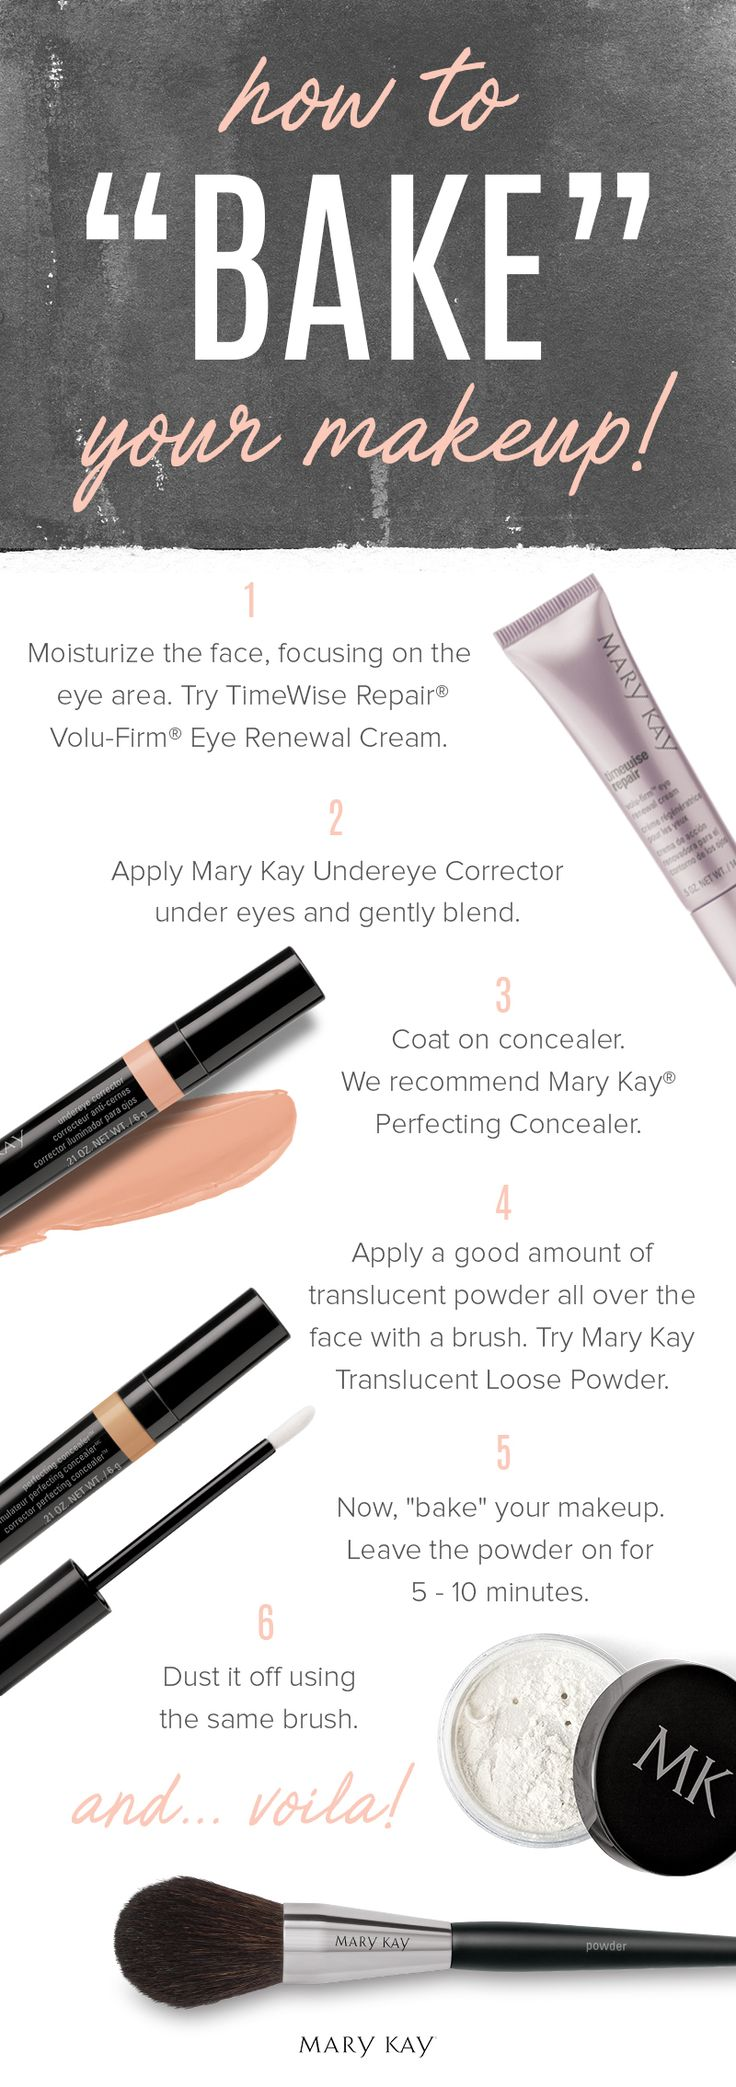 """Bake"" your way to a flawless-looking face! The key to this beauty trend is letting translucent powder sit on your face for five to 10 minutes, allowing the heat from your face to set your base foundation and concealer. 